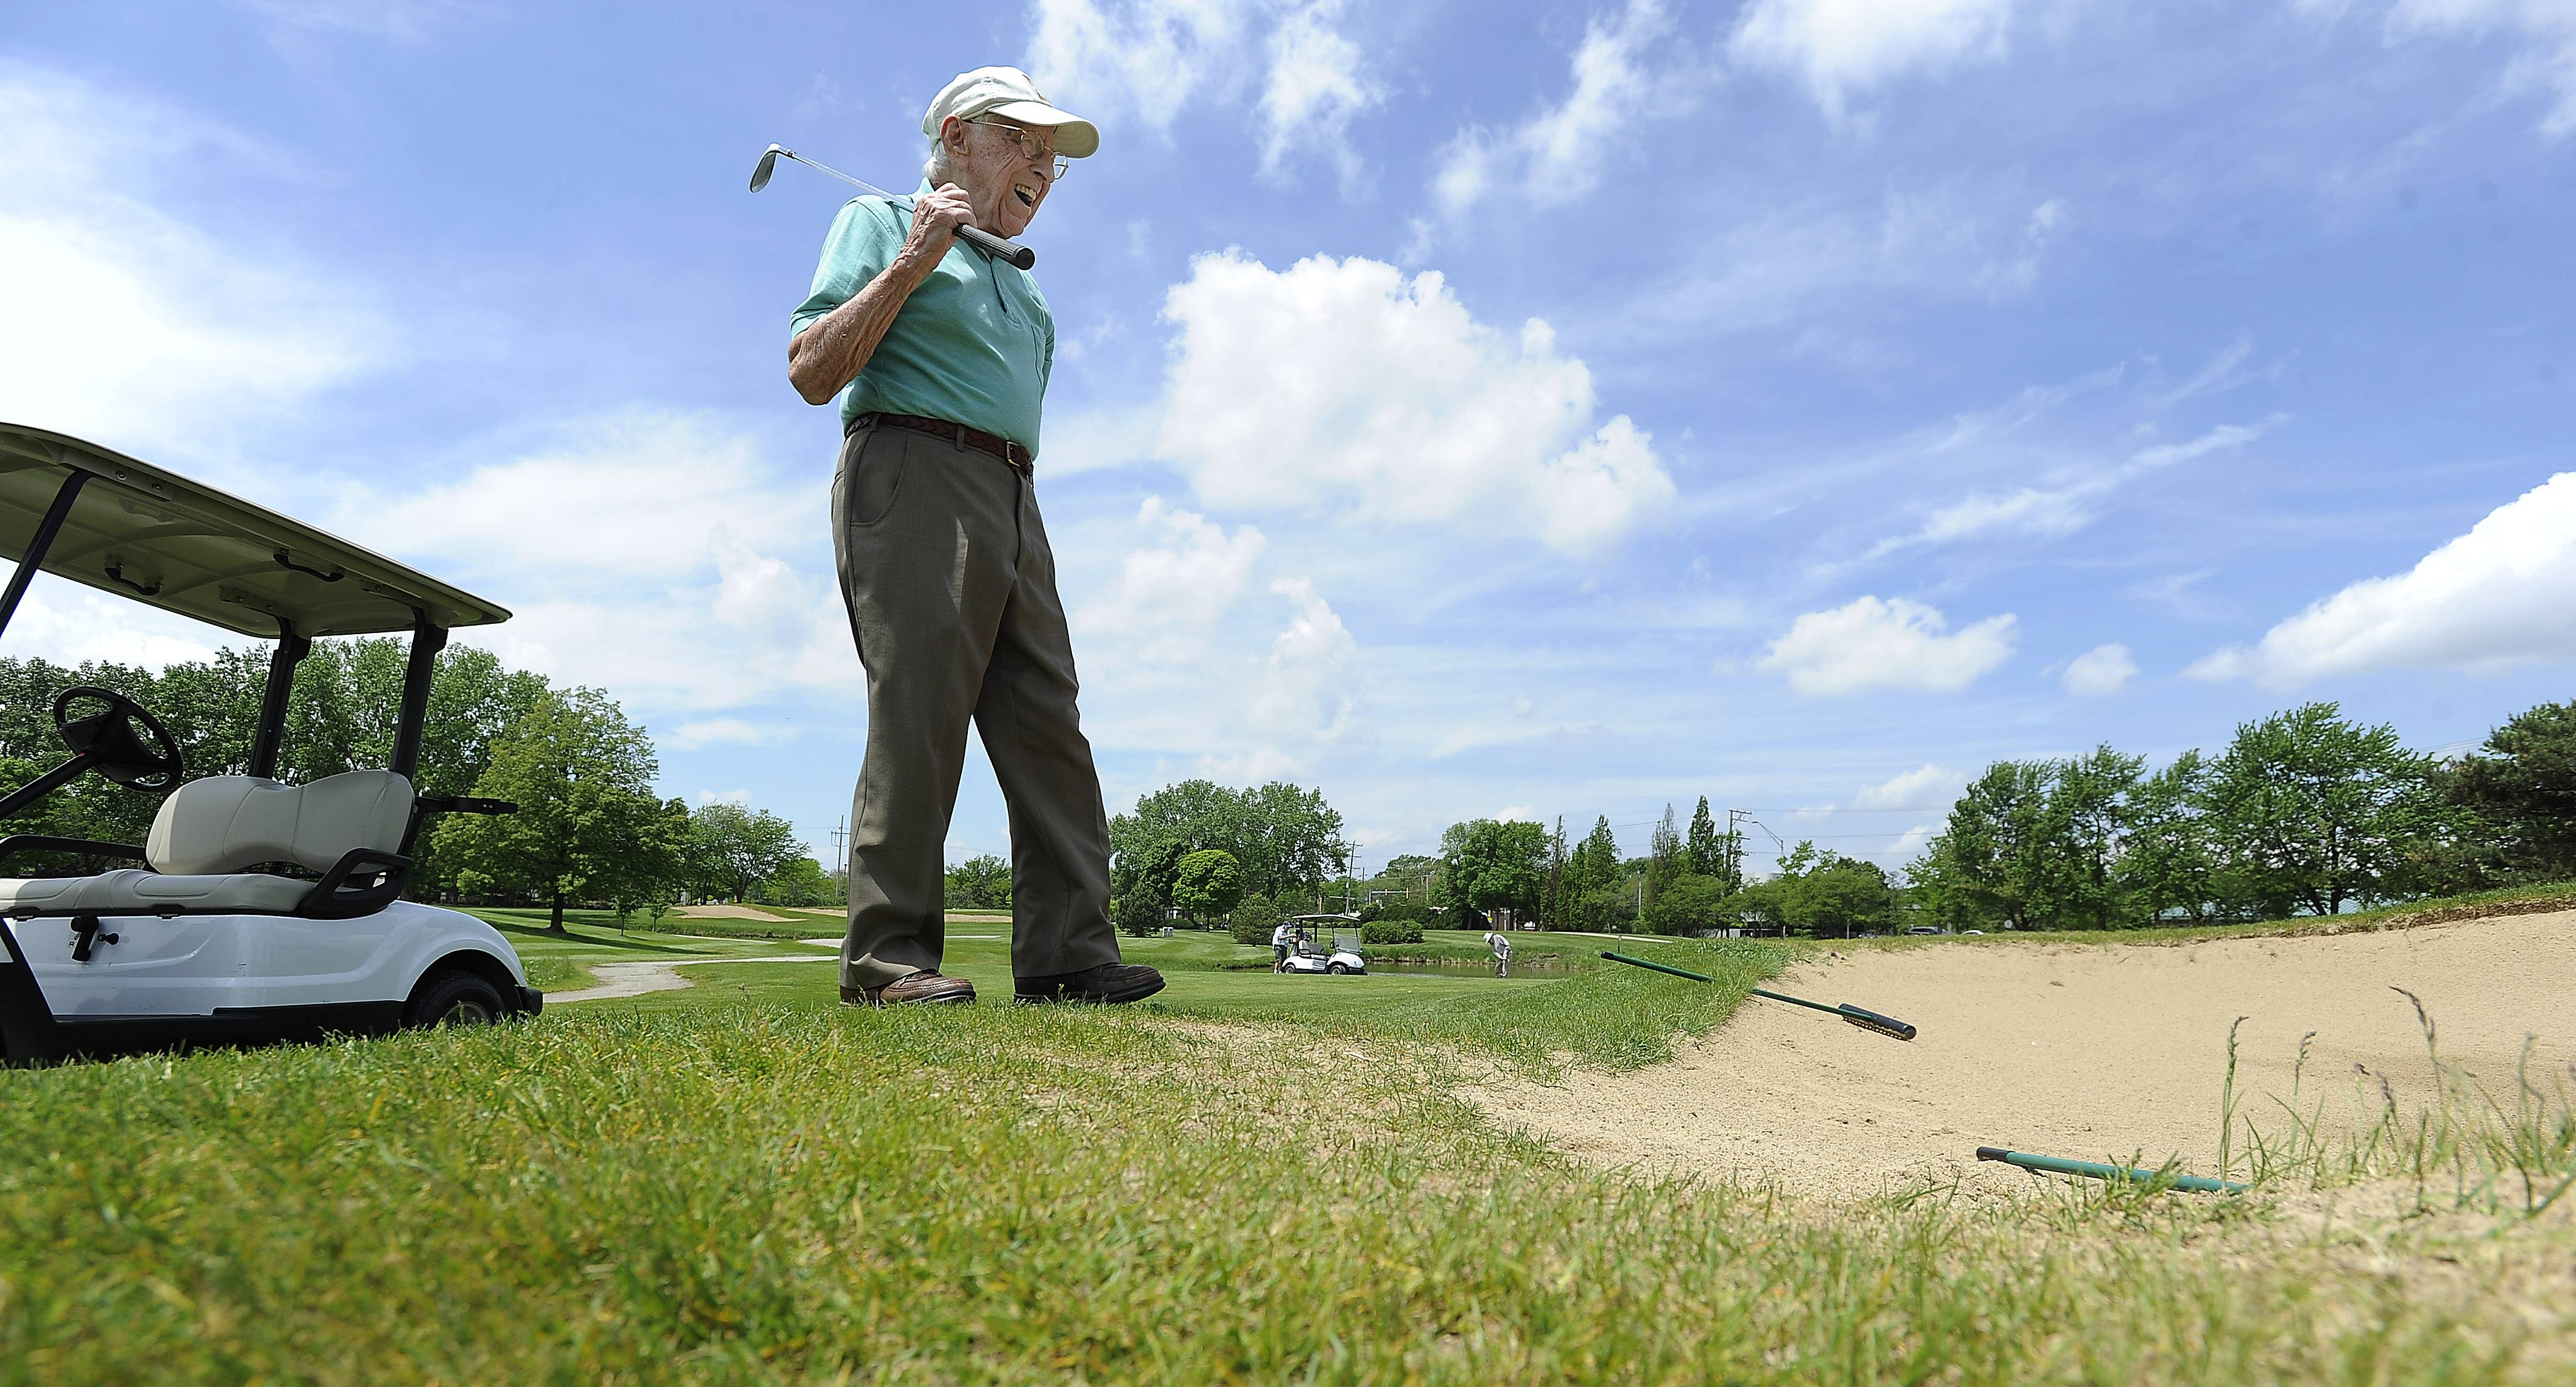 Walking down into a sand trap would be an ordeal for most centenarians, but 103-year-old golfer Dick Muhlethaler laughs as he ponders the difficult chip shot he faces on the 9th hole at Arlington Lakes Golf Club.